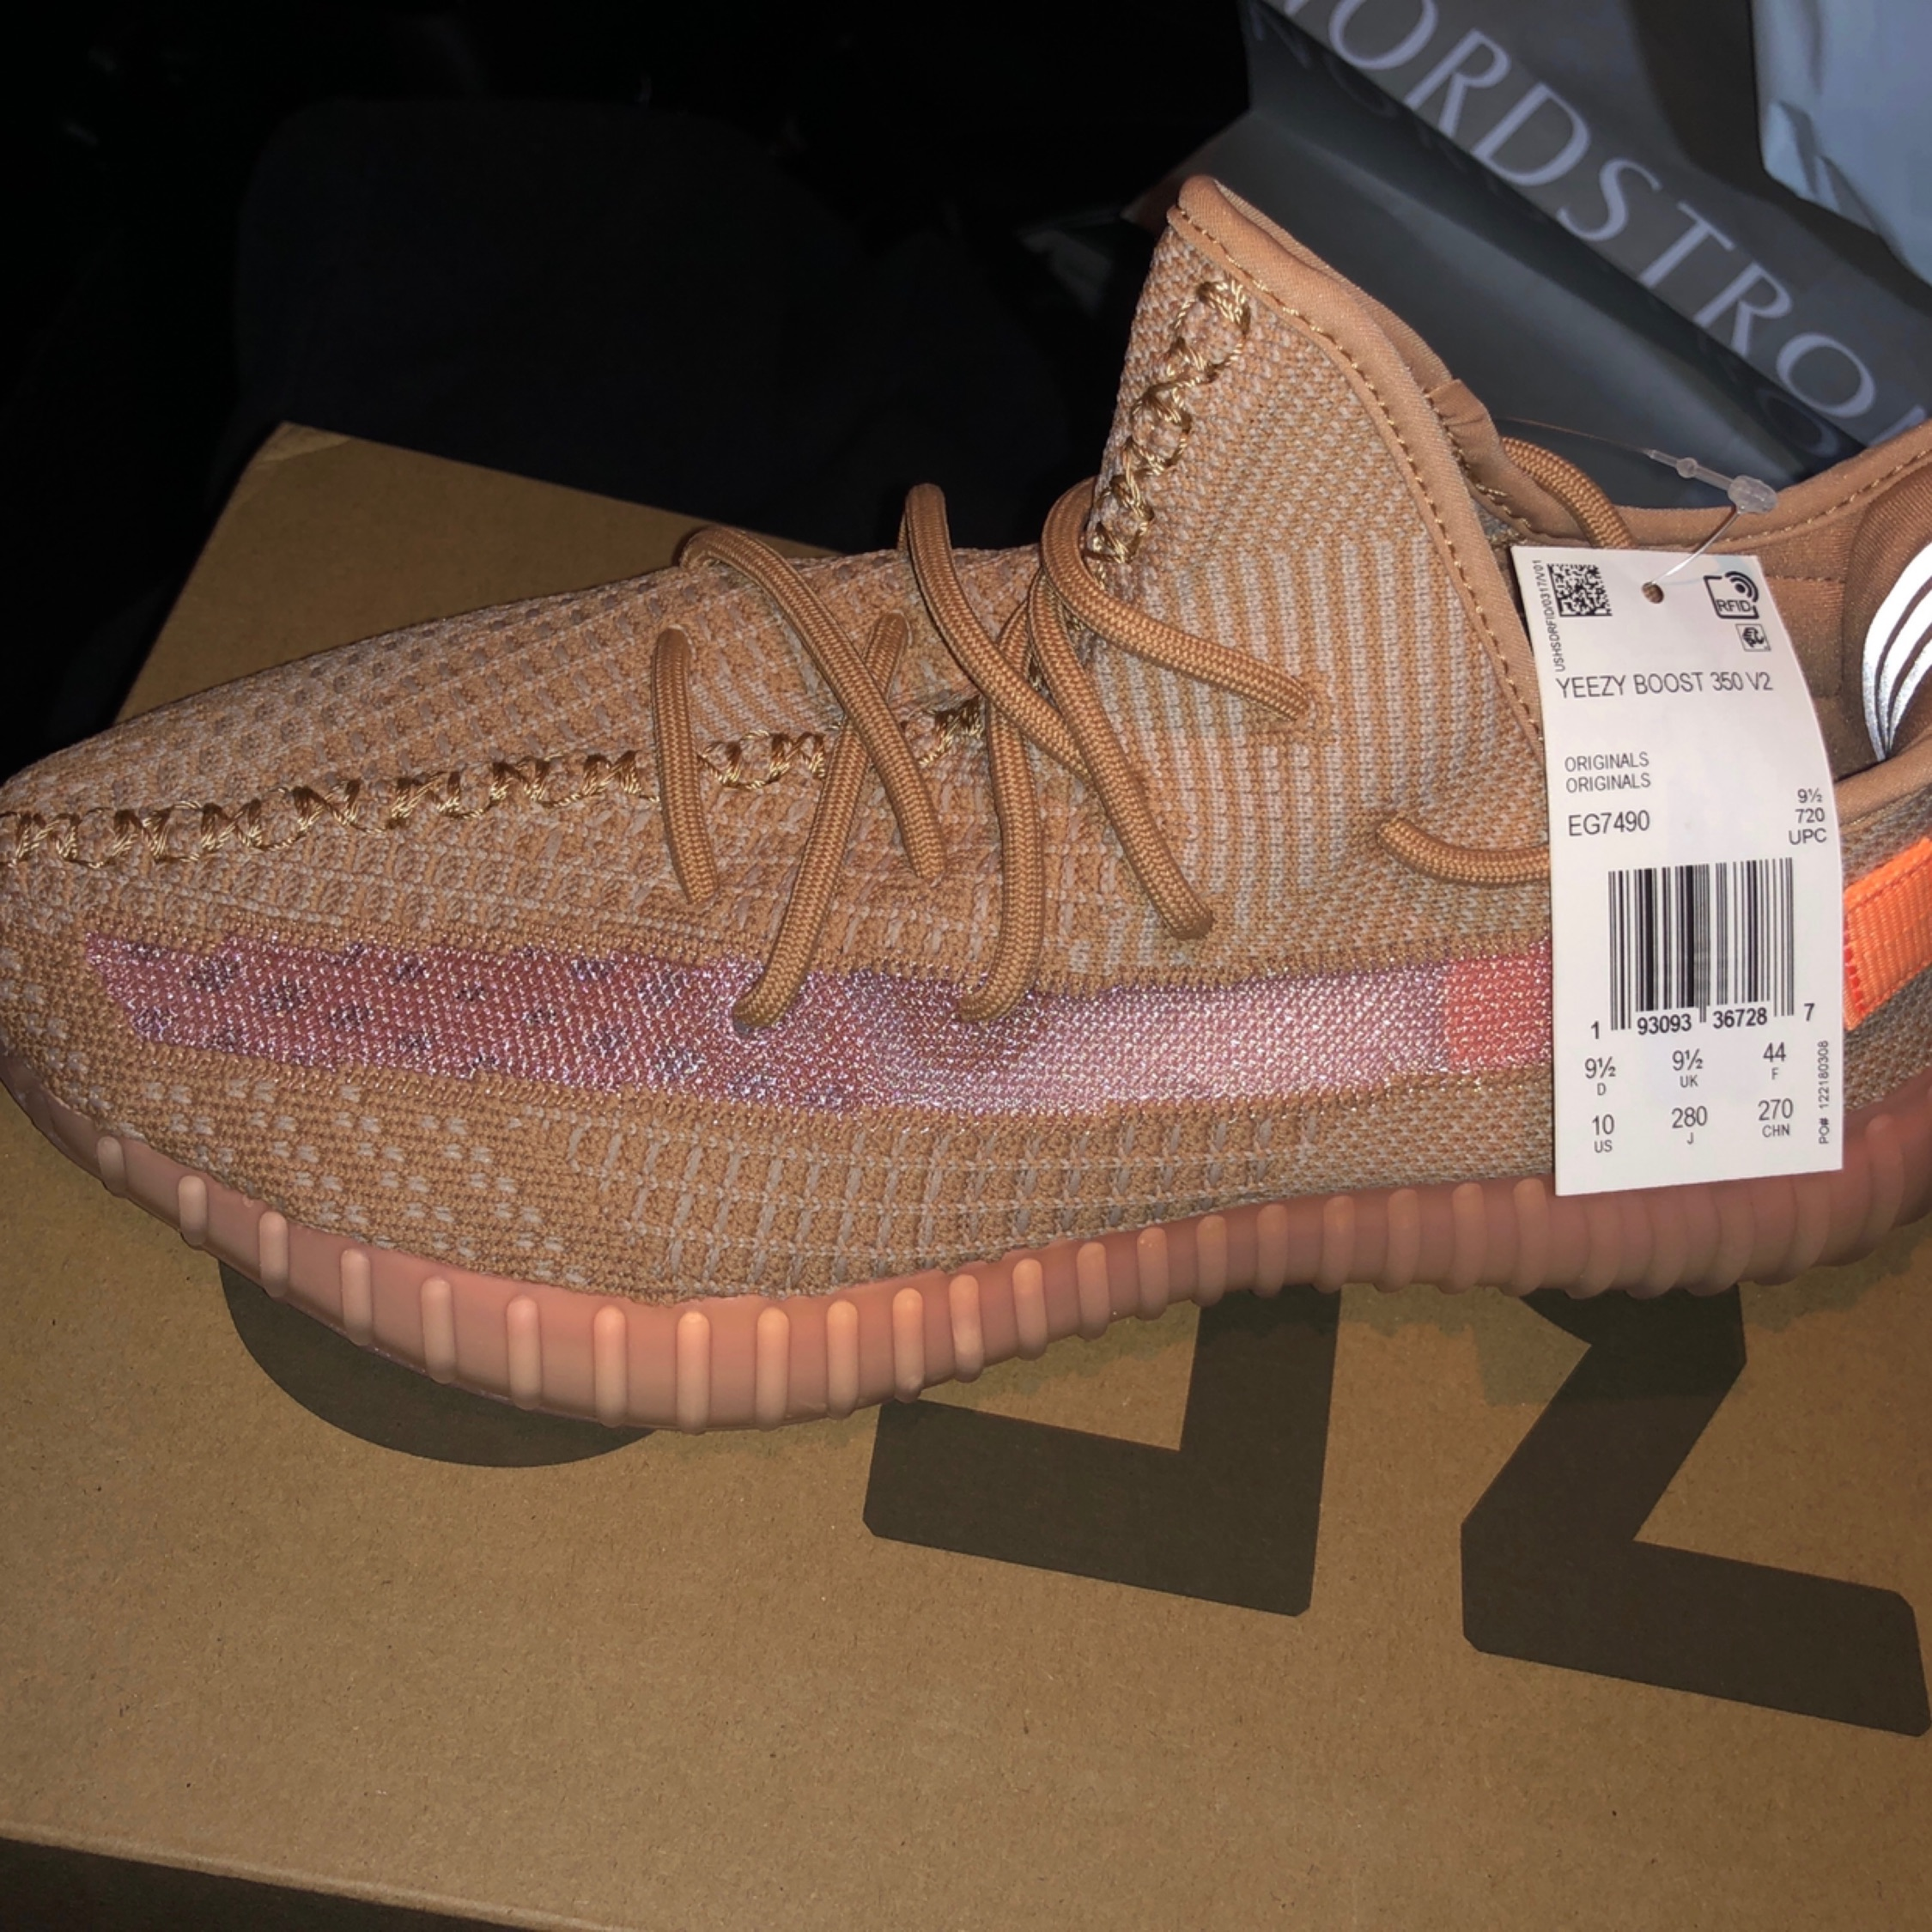 Yeezy Boost 350 V2 Clay Size 10